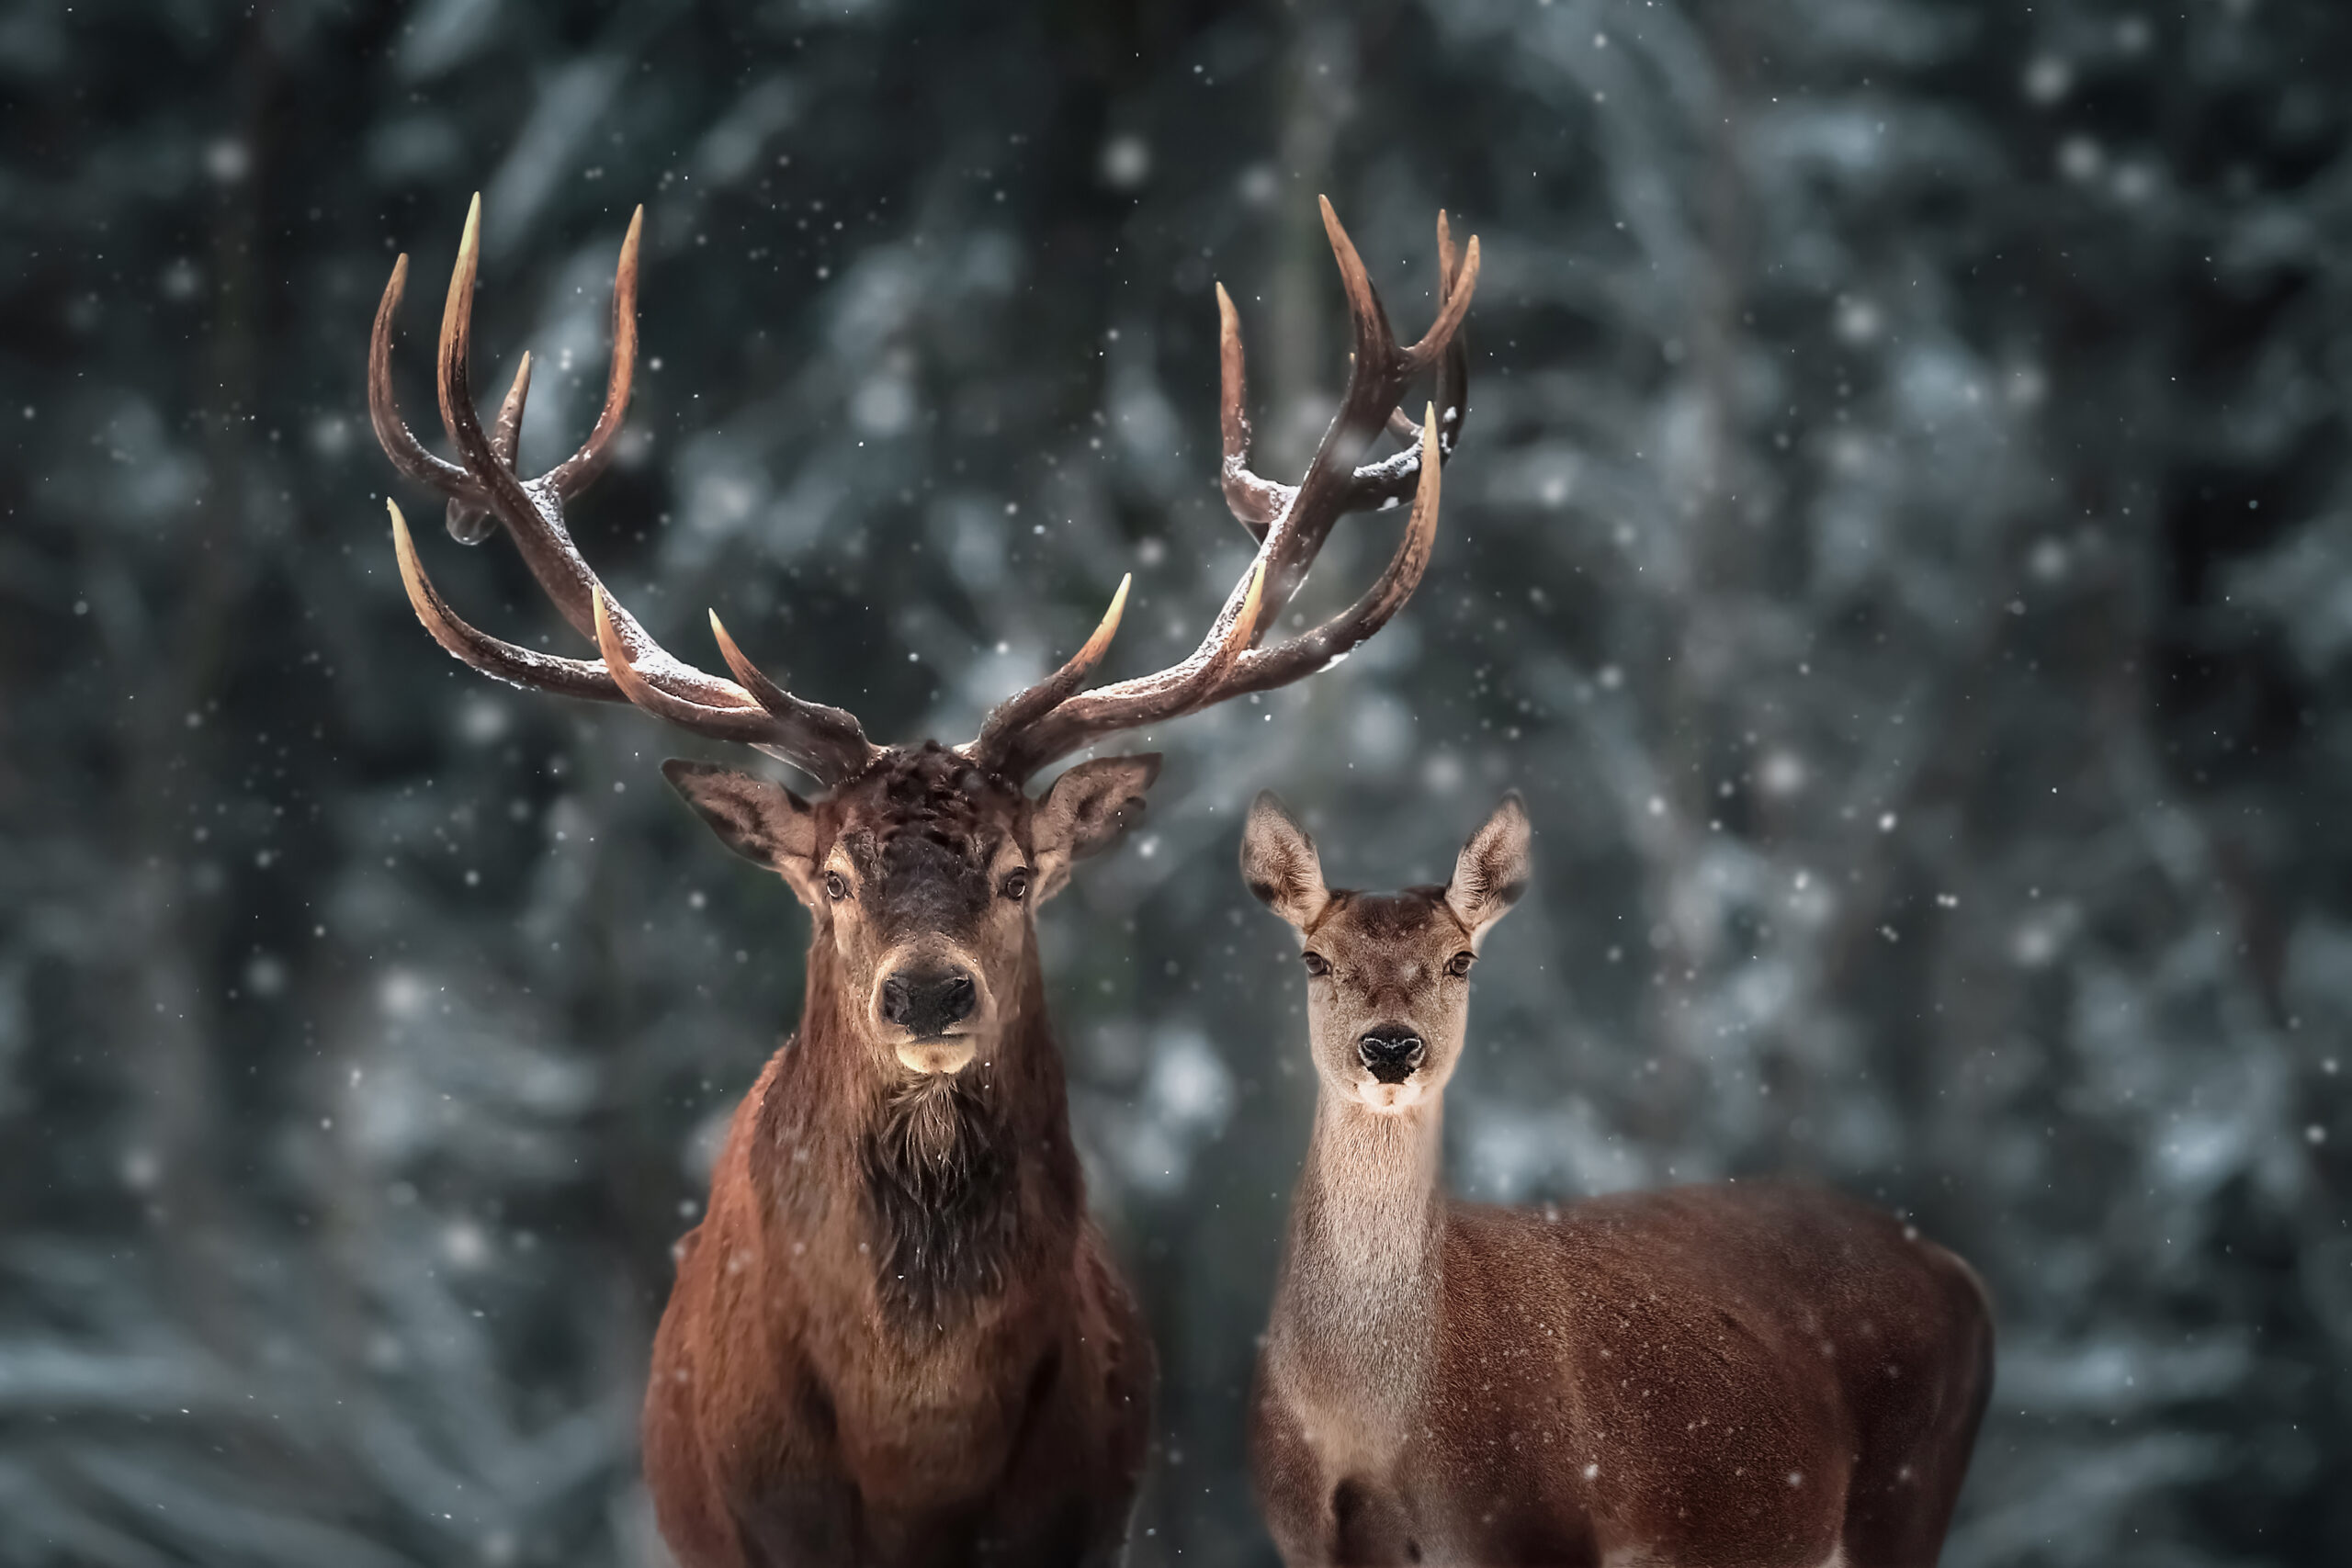 Find out about the two different species of deer that you can find in the Middle East in Kaleela's look at the Middle East's answer to Bambi and Rudolph.